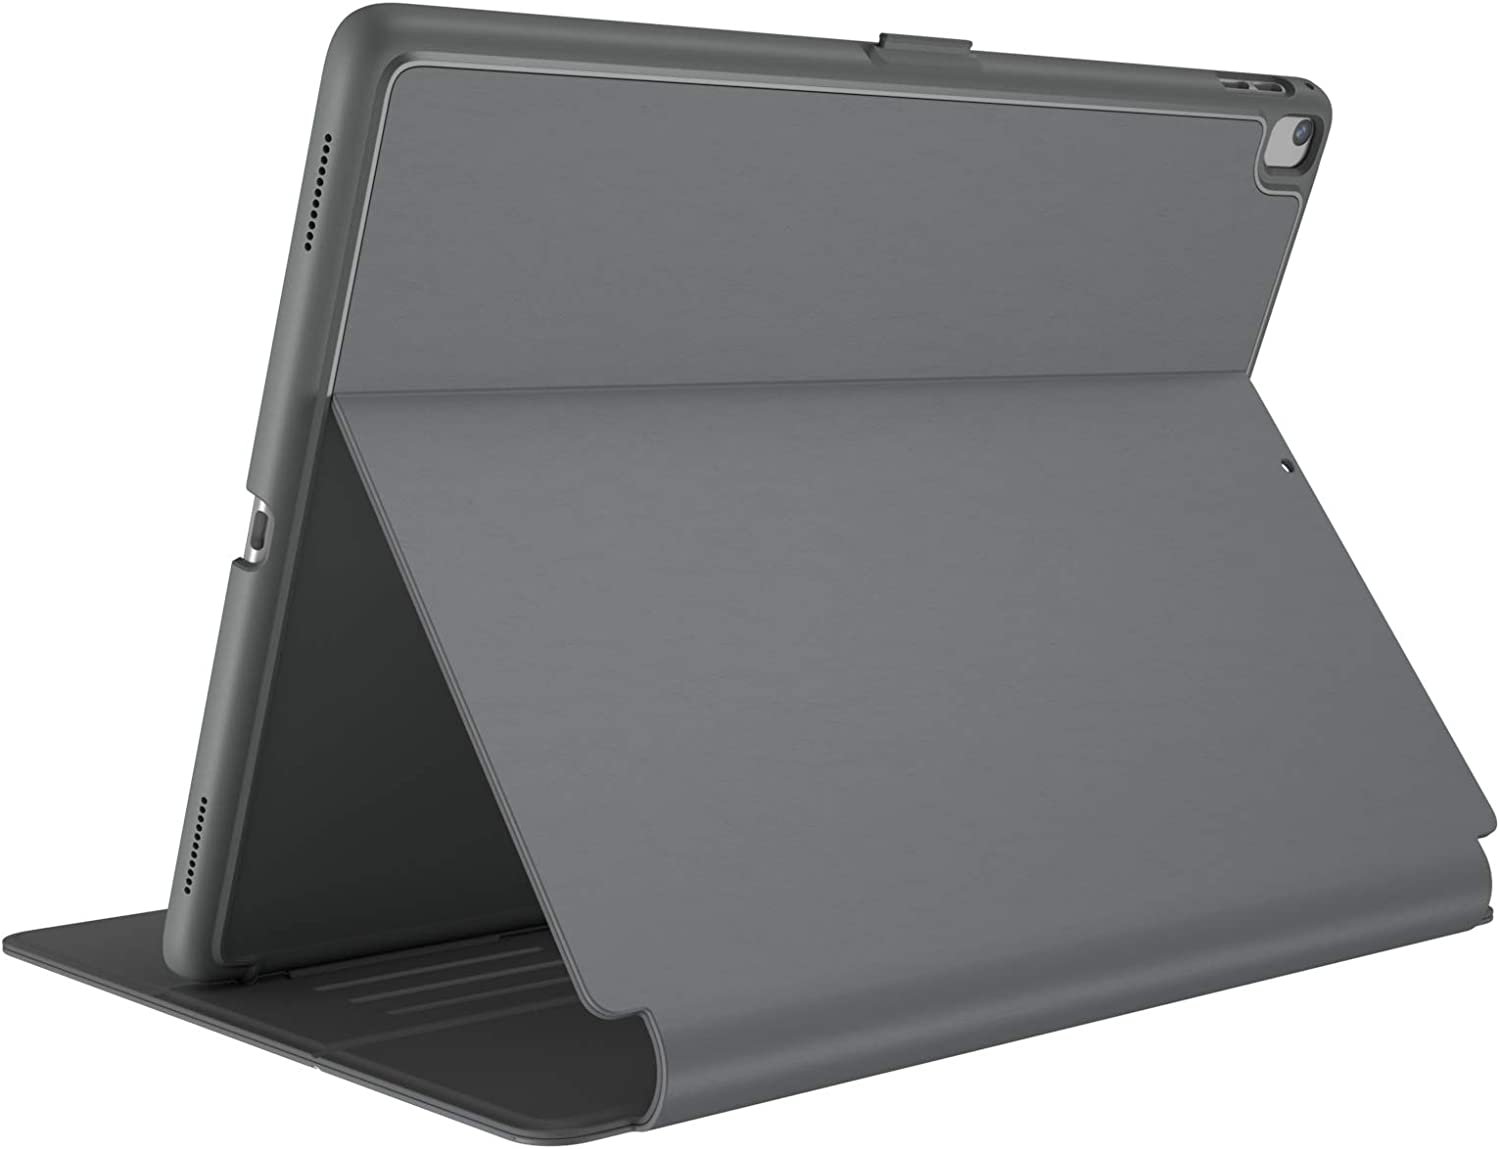 """Speck Products Compatible Case for Apple iPad 9.7"""" (2017/2018, also fits 9.7"""" iPad Pro/Air 2/Air), Balance FOLIO Case/Stand, Stormy Grey/Charcoal Grey"""